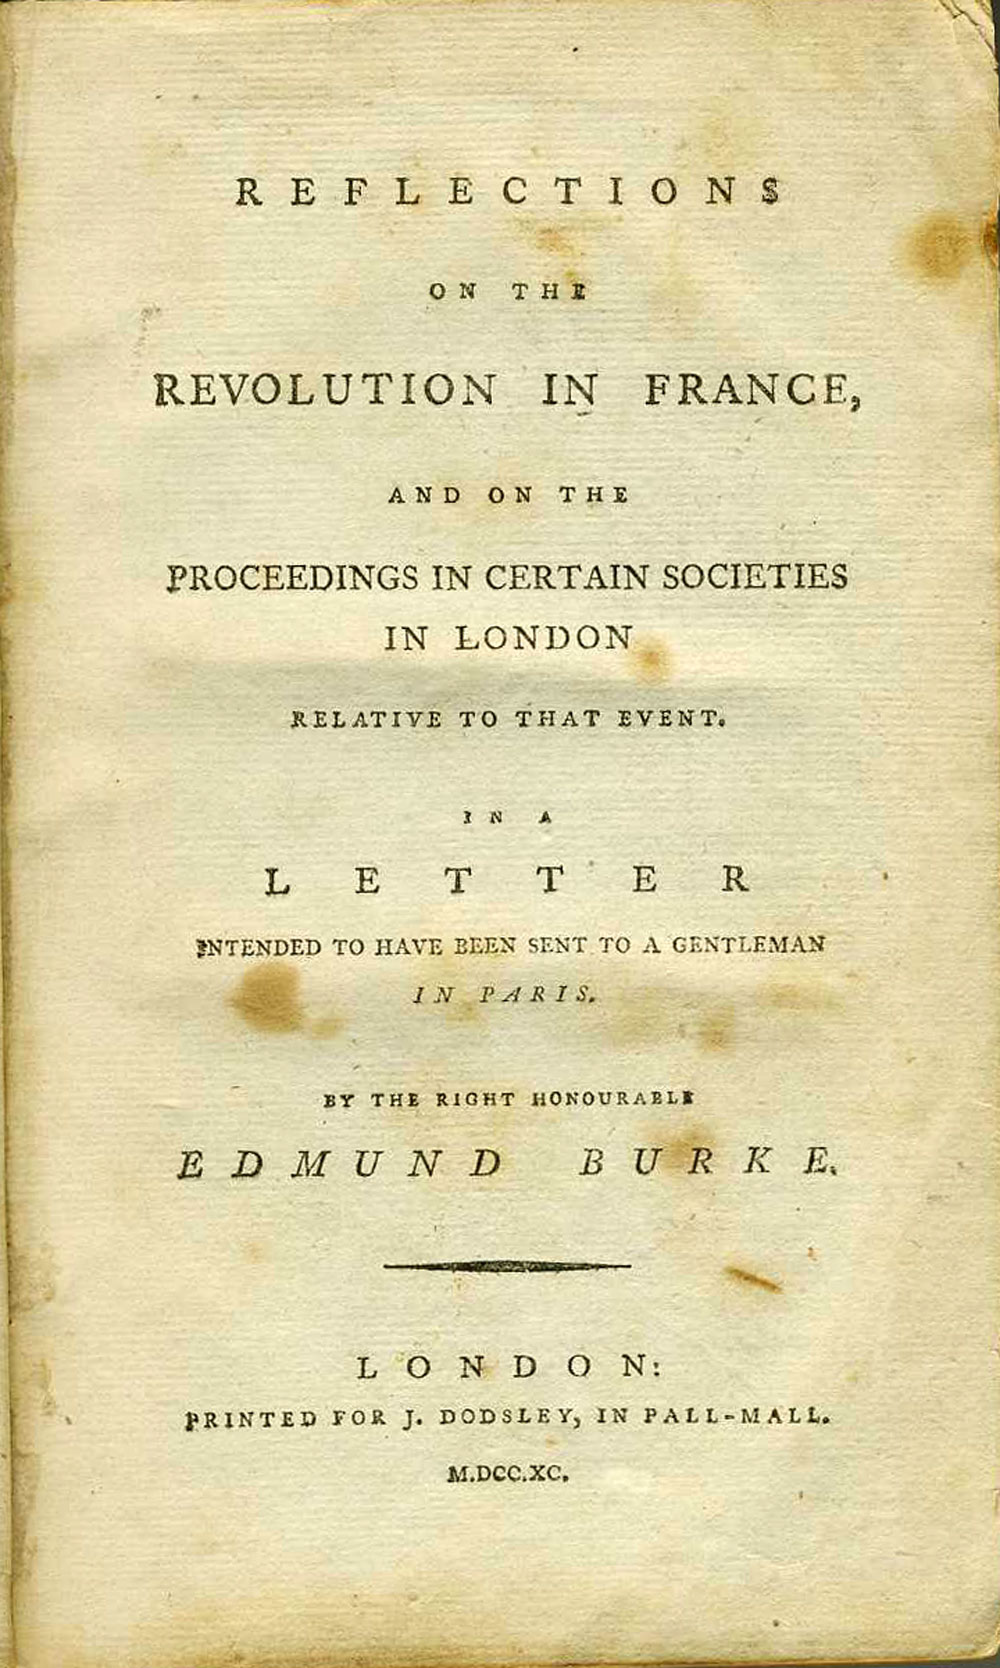 Title page of Reflections on the Revolution in France by Edmund Burke.